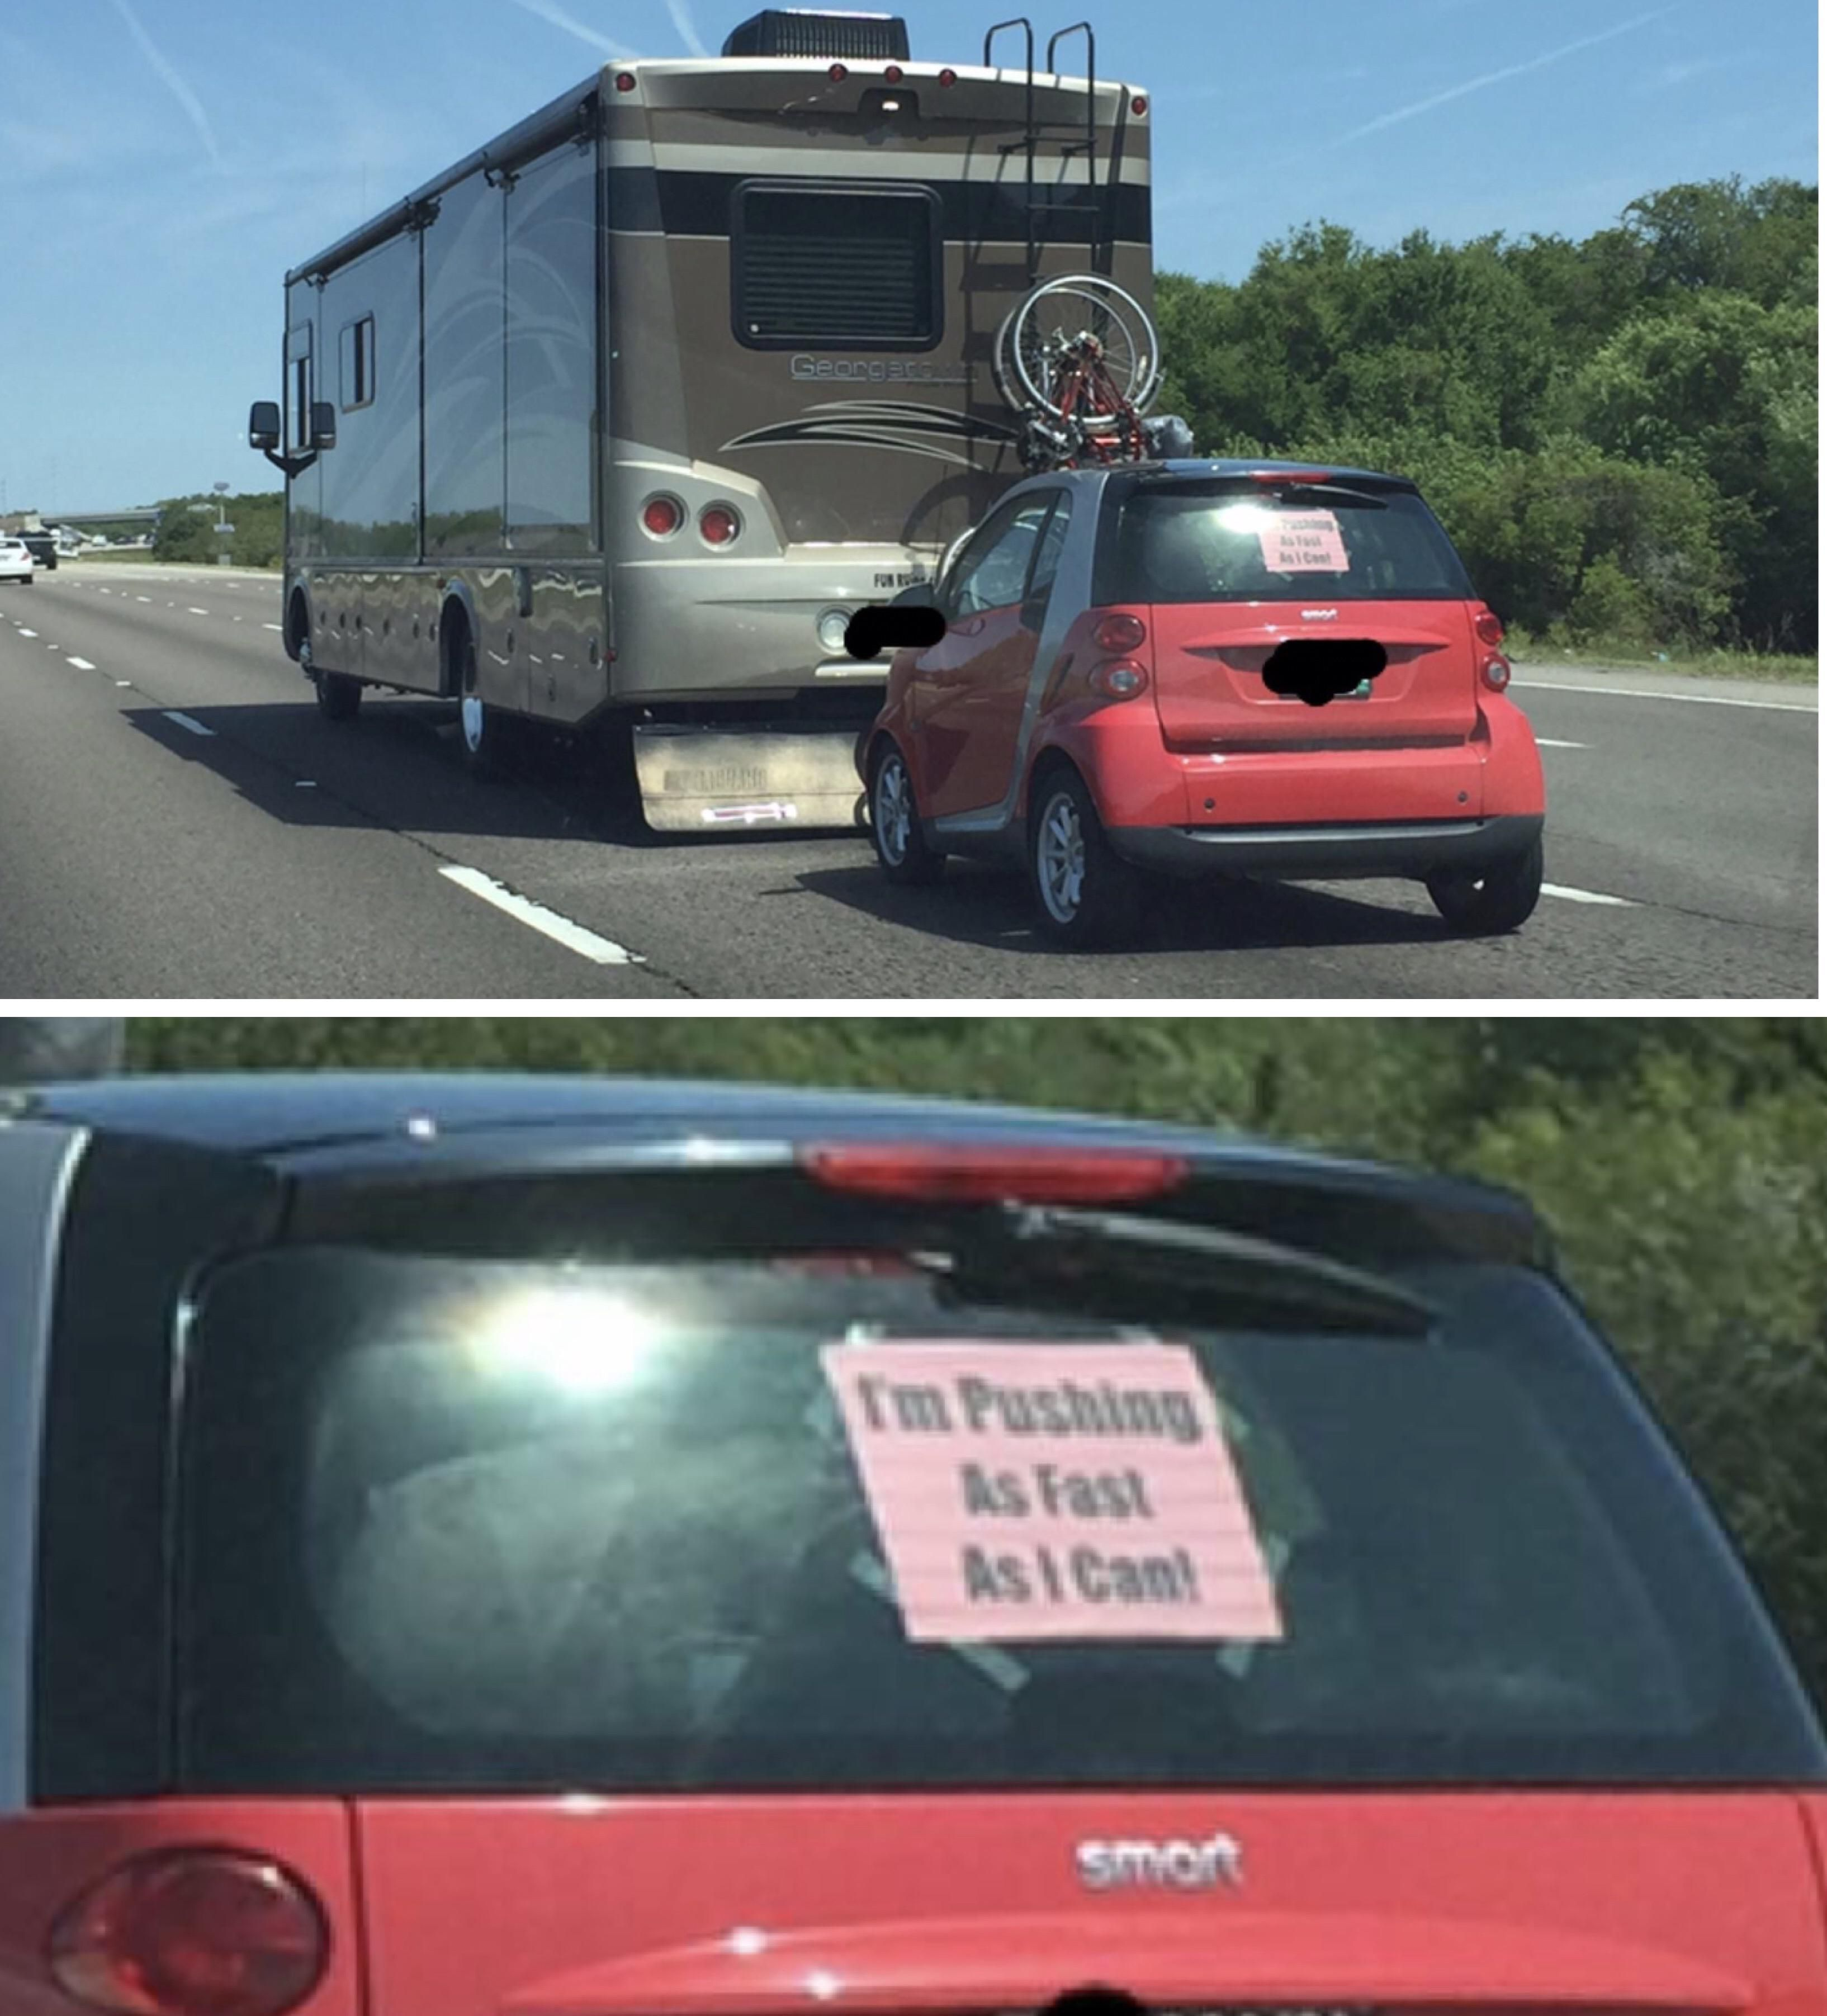 This is still one of my favorite things I've witnessed on the highway.